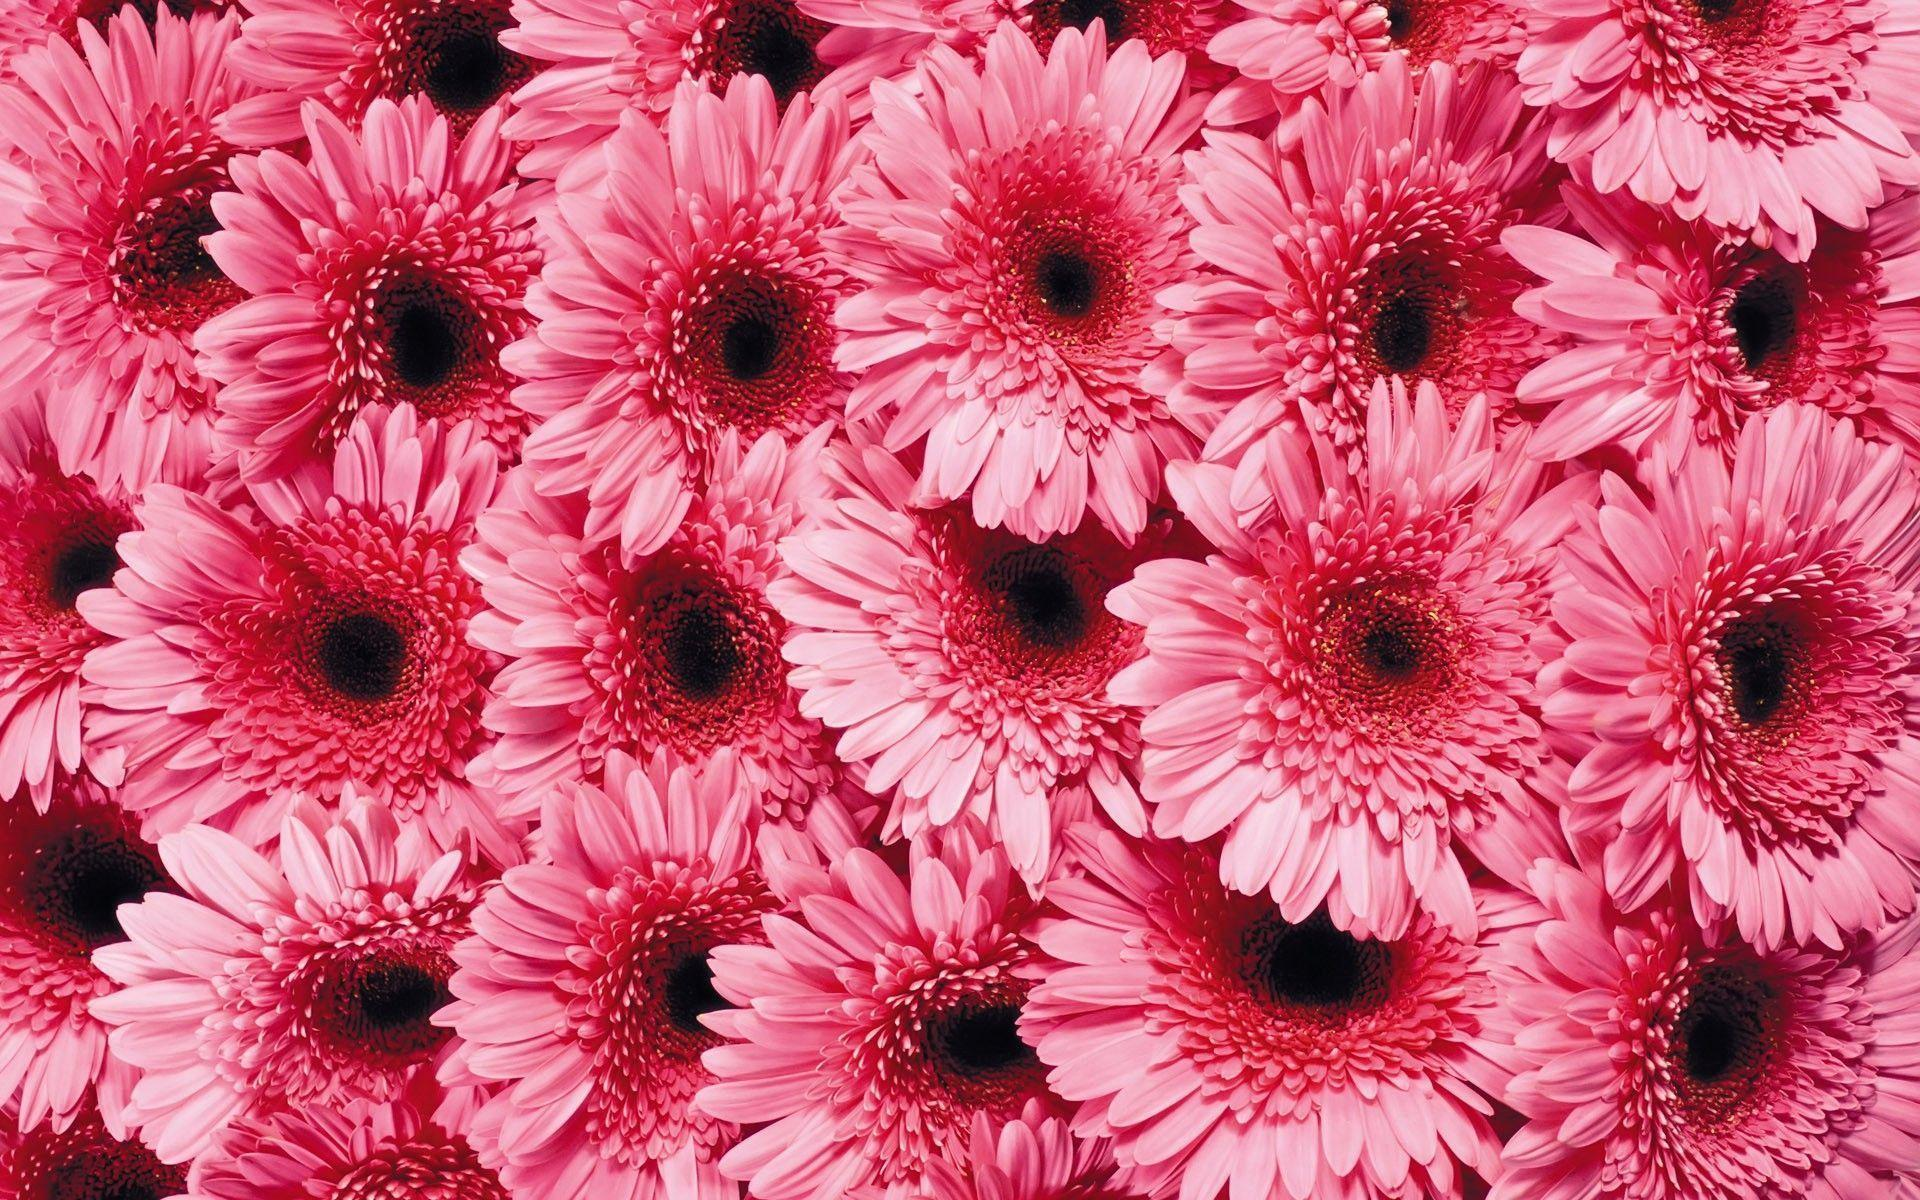 Pink daisies background